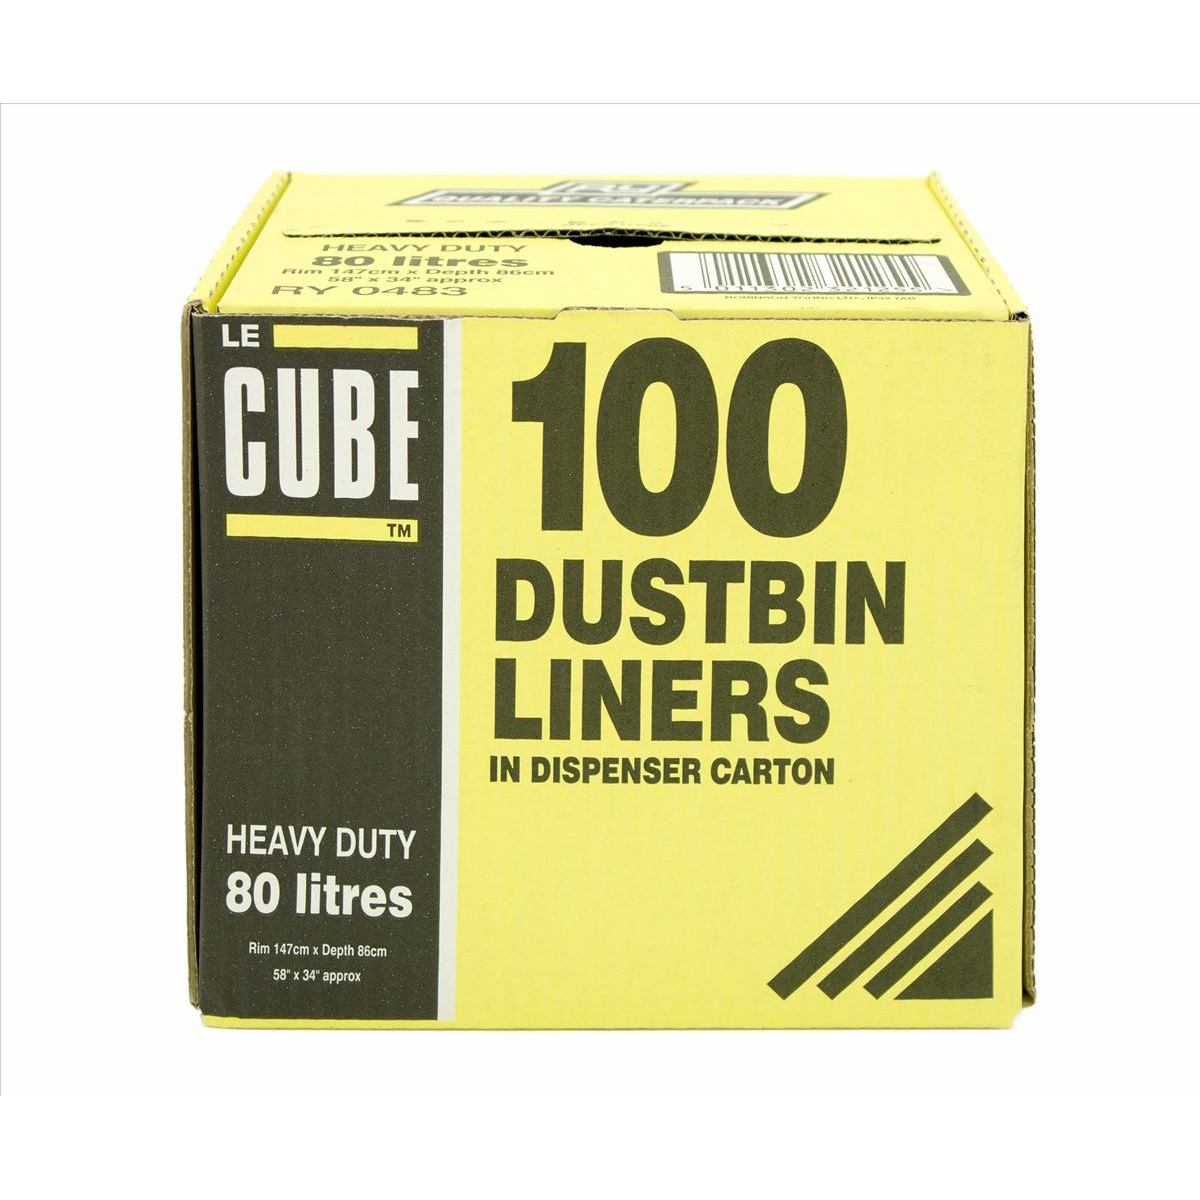 Le Cube Dustbin Liners in Dispenser Box 92 Litre Capacity 1474x864mm Black Ref RY00483 [Pack 100]